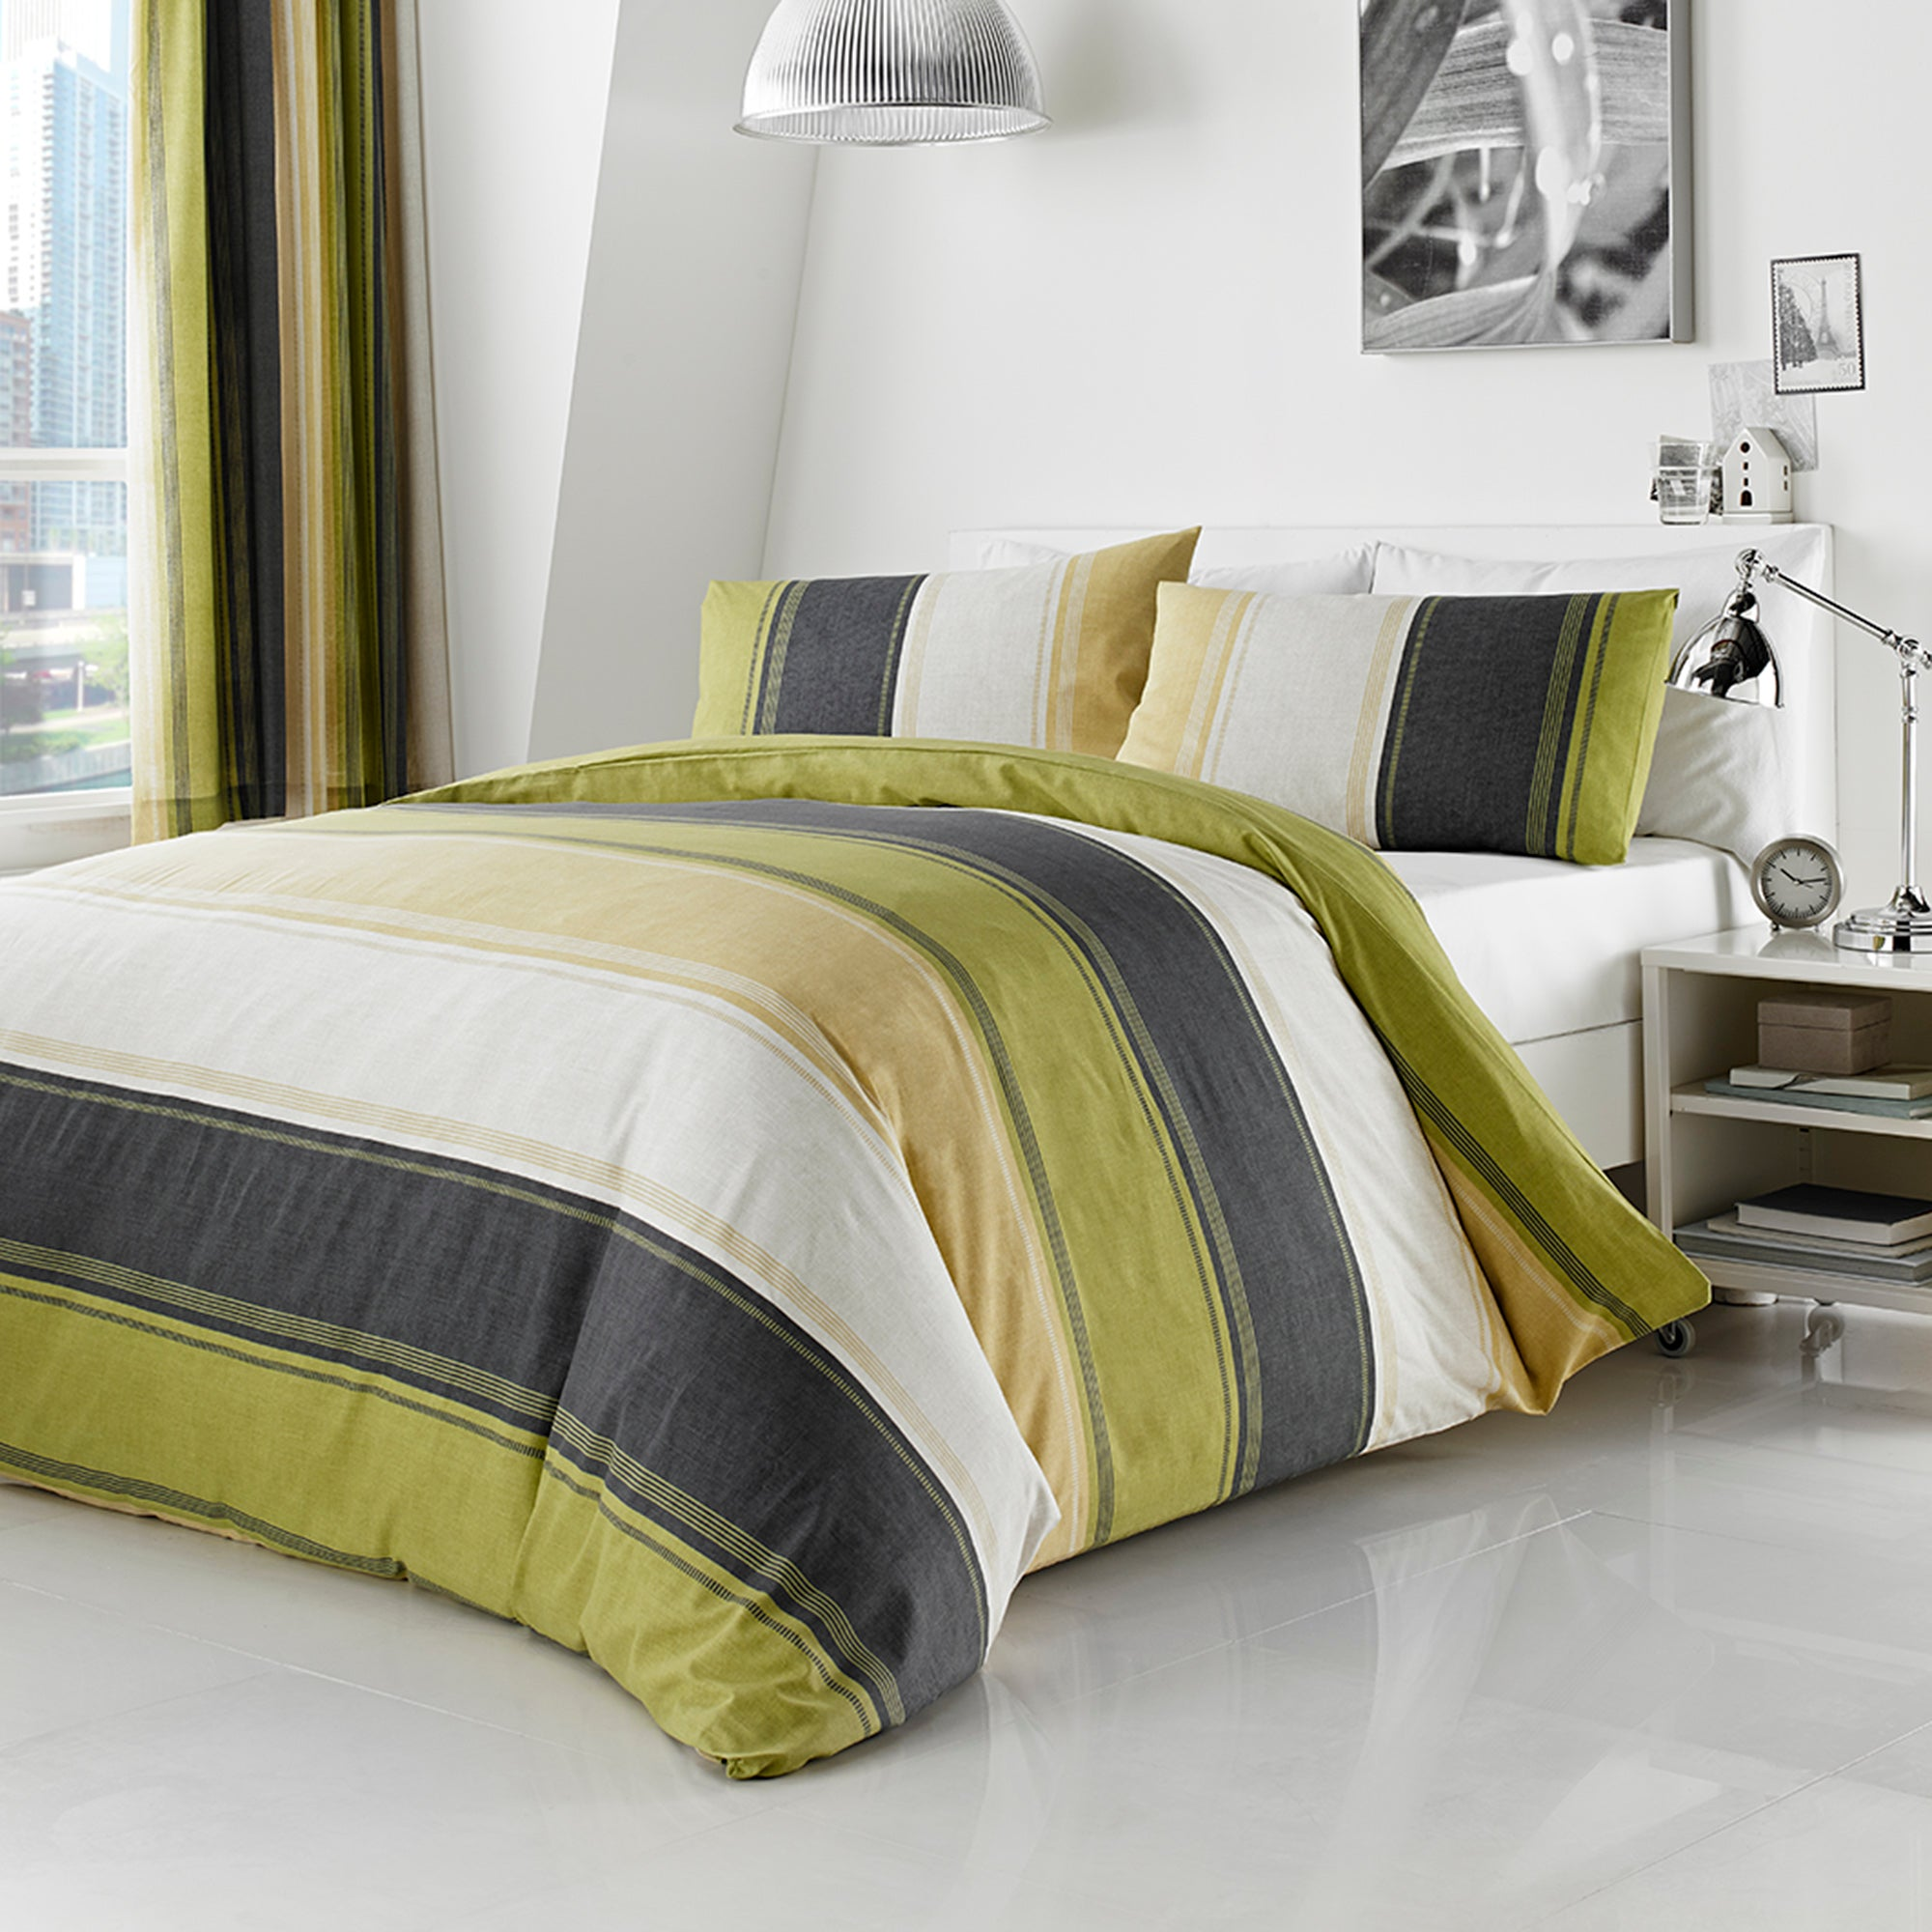 green finley collection duvet cover set dunelm. Black Bedroom Furniture Sets. Home Design Ideas